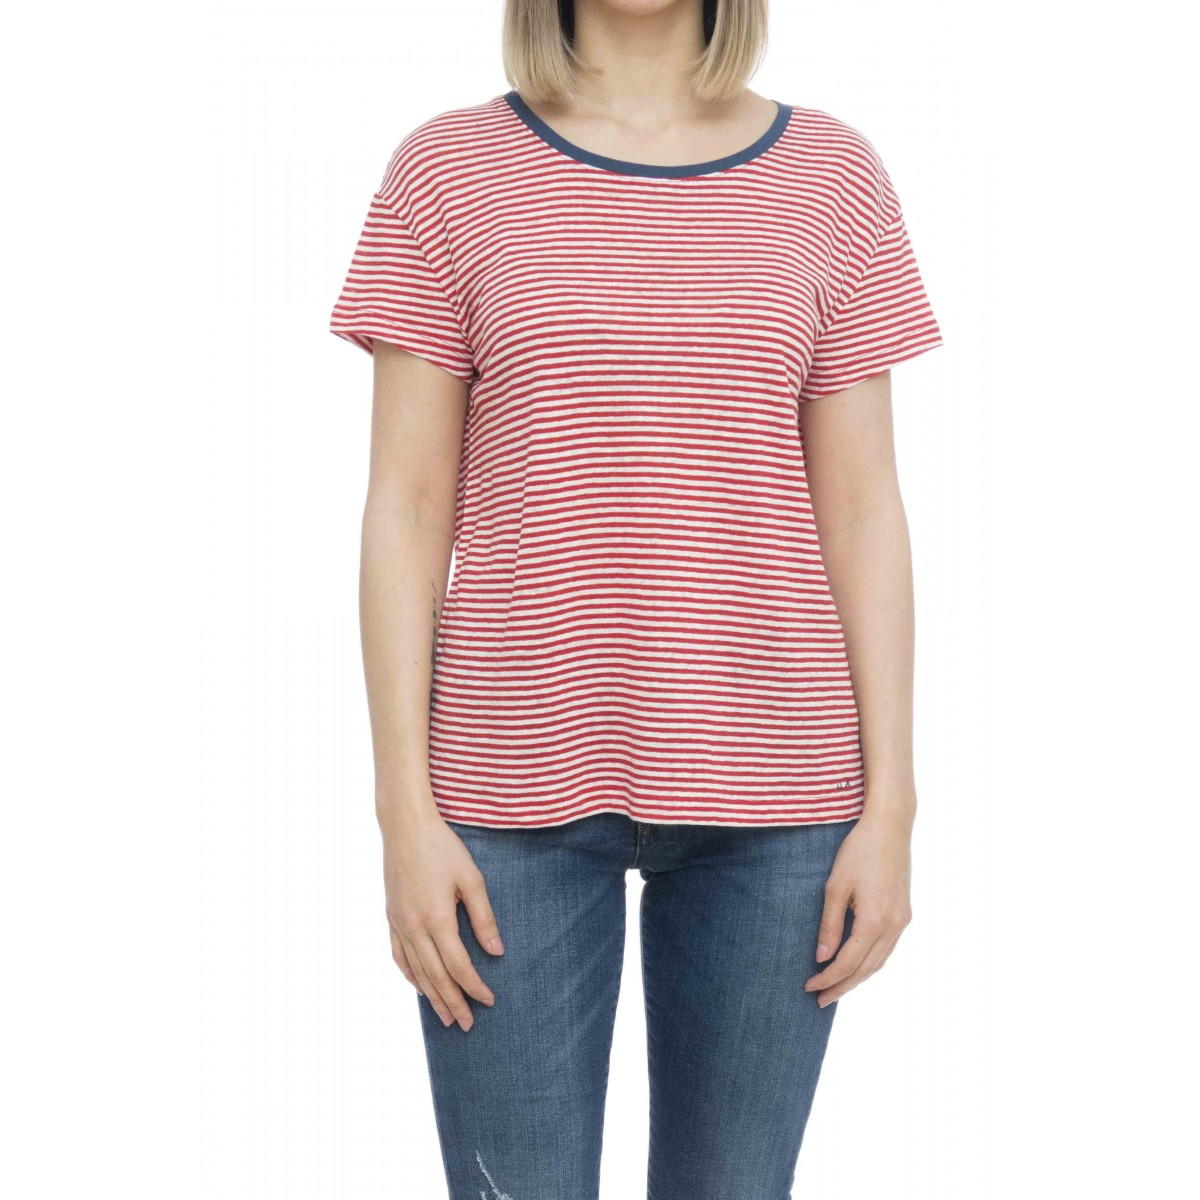 T-shirt donna - L19205 t-shirt lino over rigata